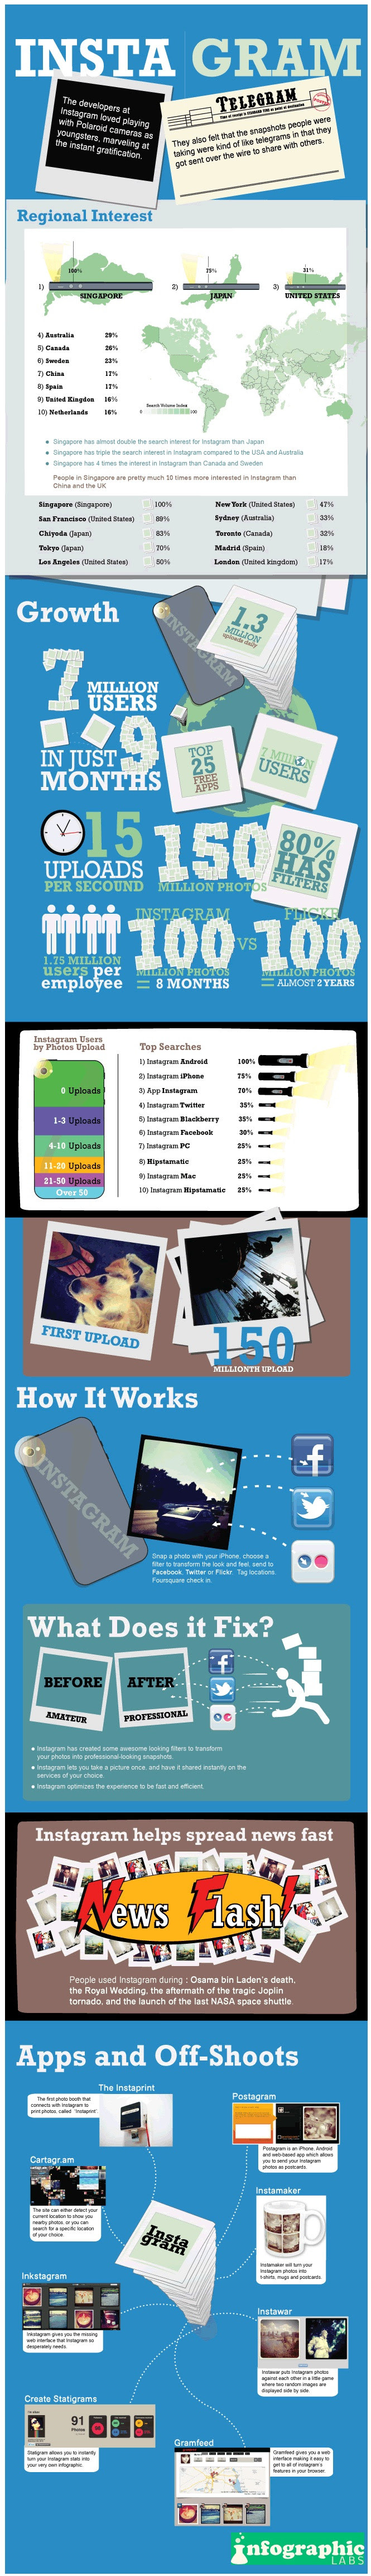 facts about the instagram and instructions on how it works - infographic